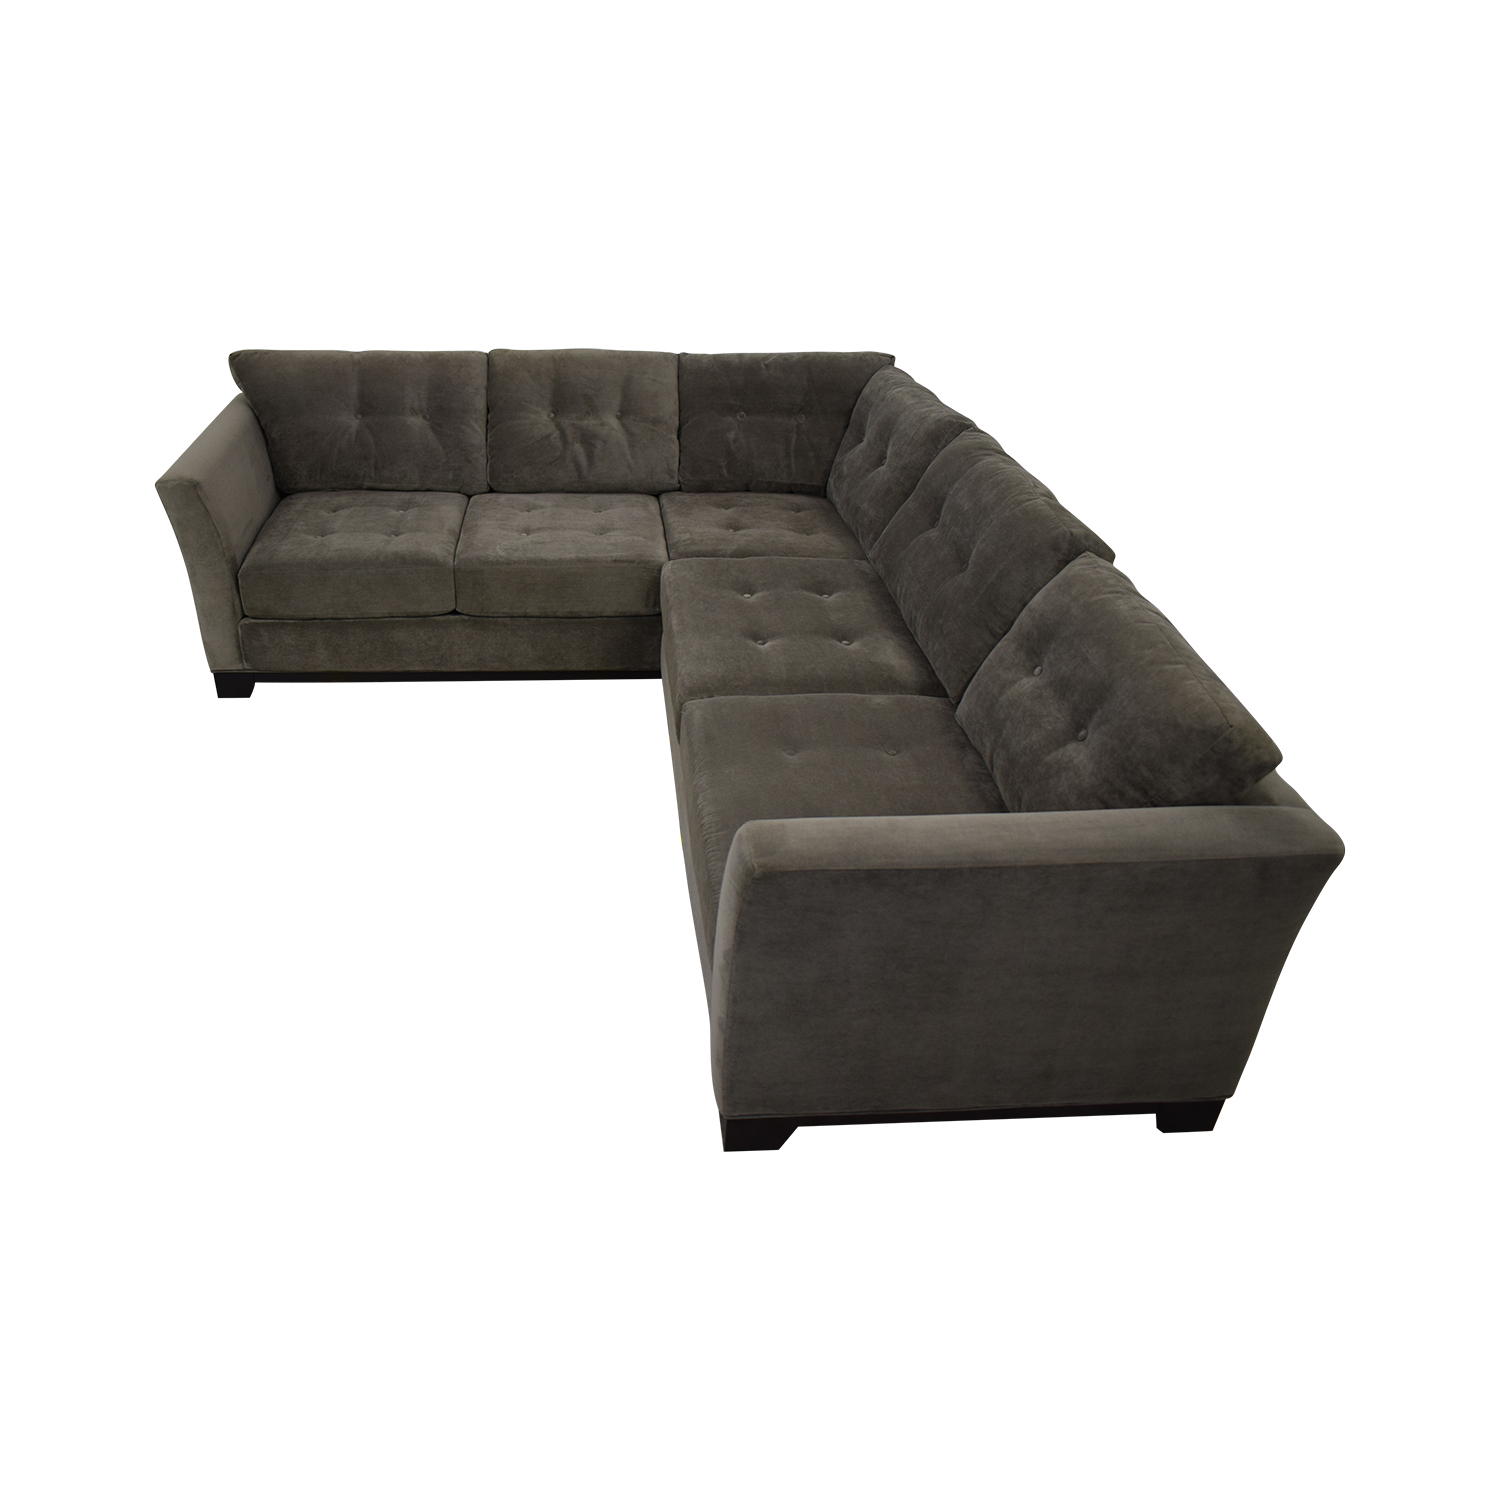 68% OFF - Jonathan Louis Jonathan Louis Sectional Sofa / Sofas